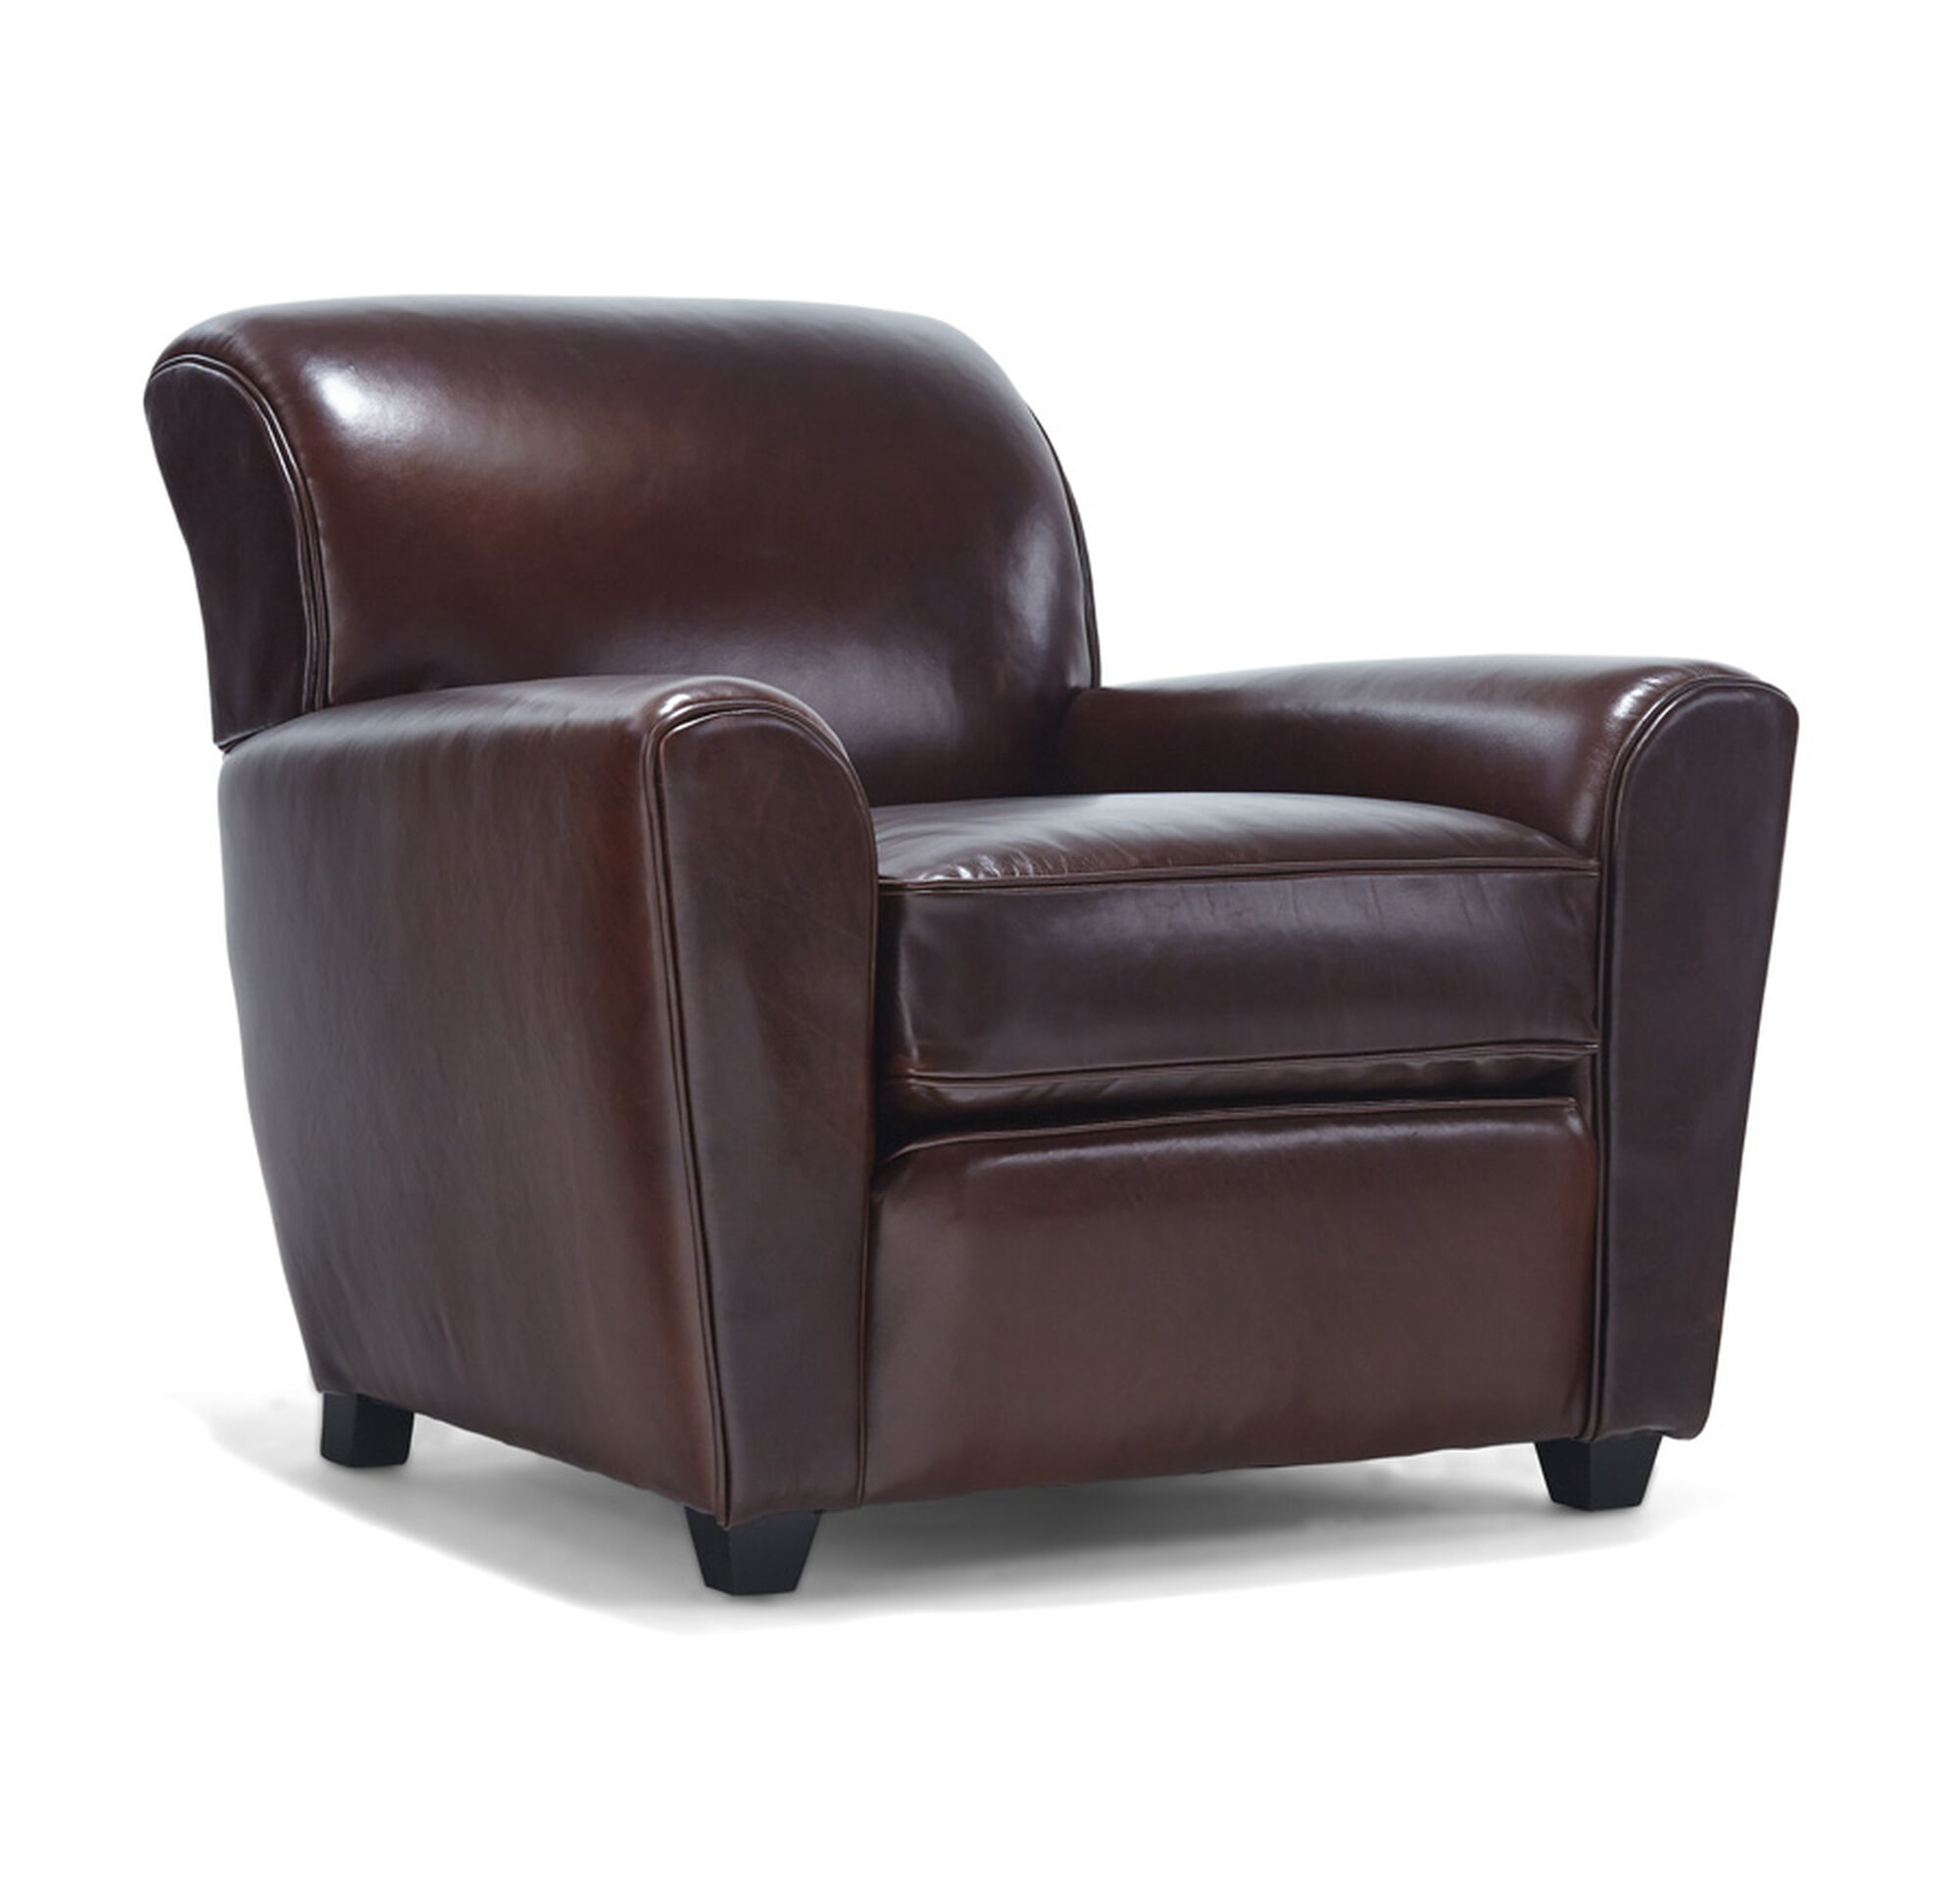 Fine Louie Leather Chair Mitchell Gold Bob Williams Ibusinesslaw Wood Chair Design Ideas Ibusinesslaworg